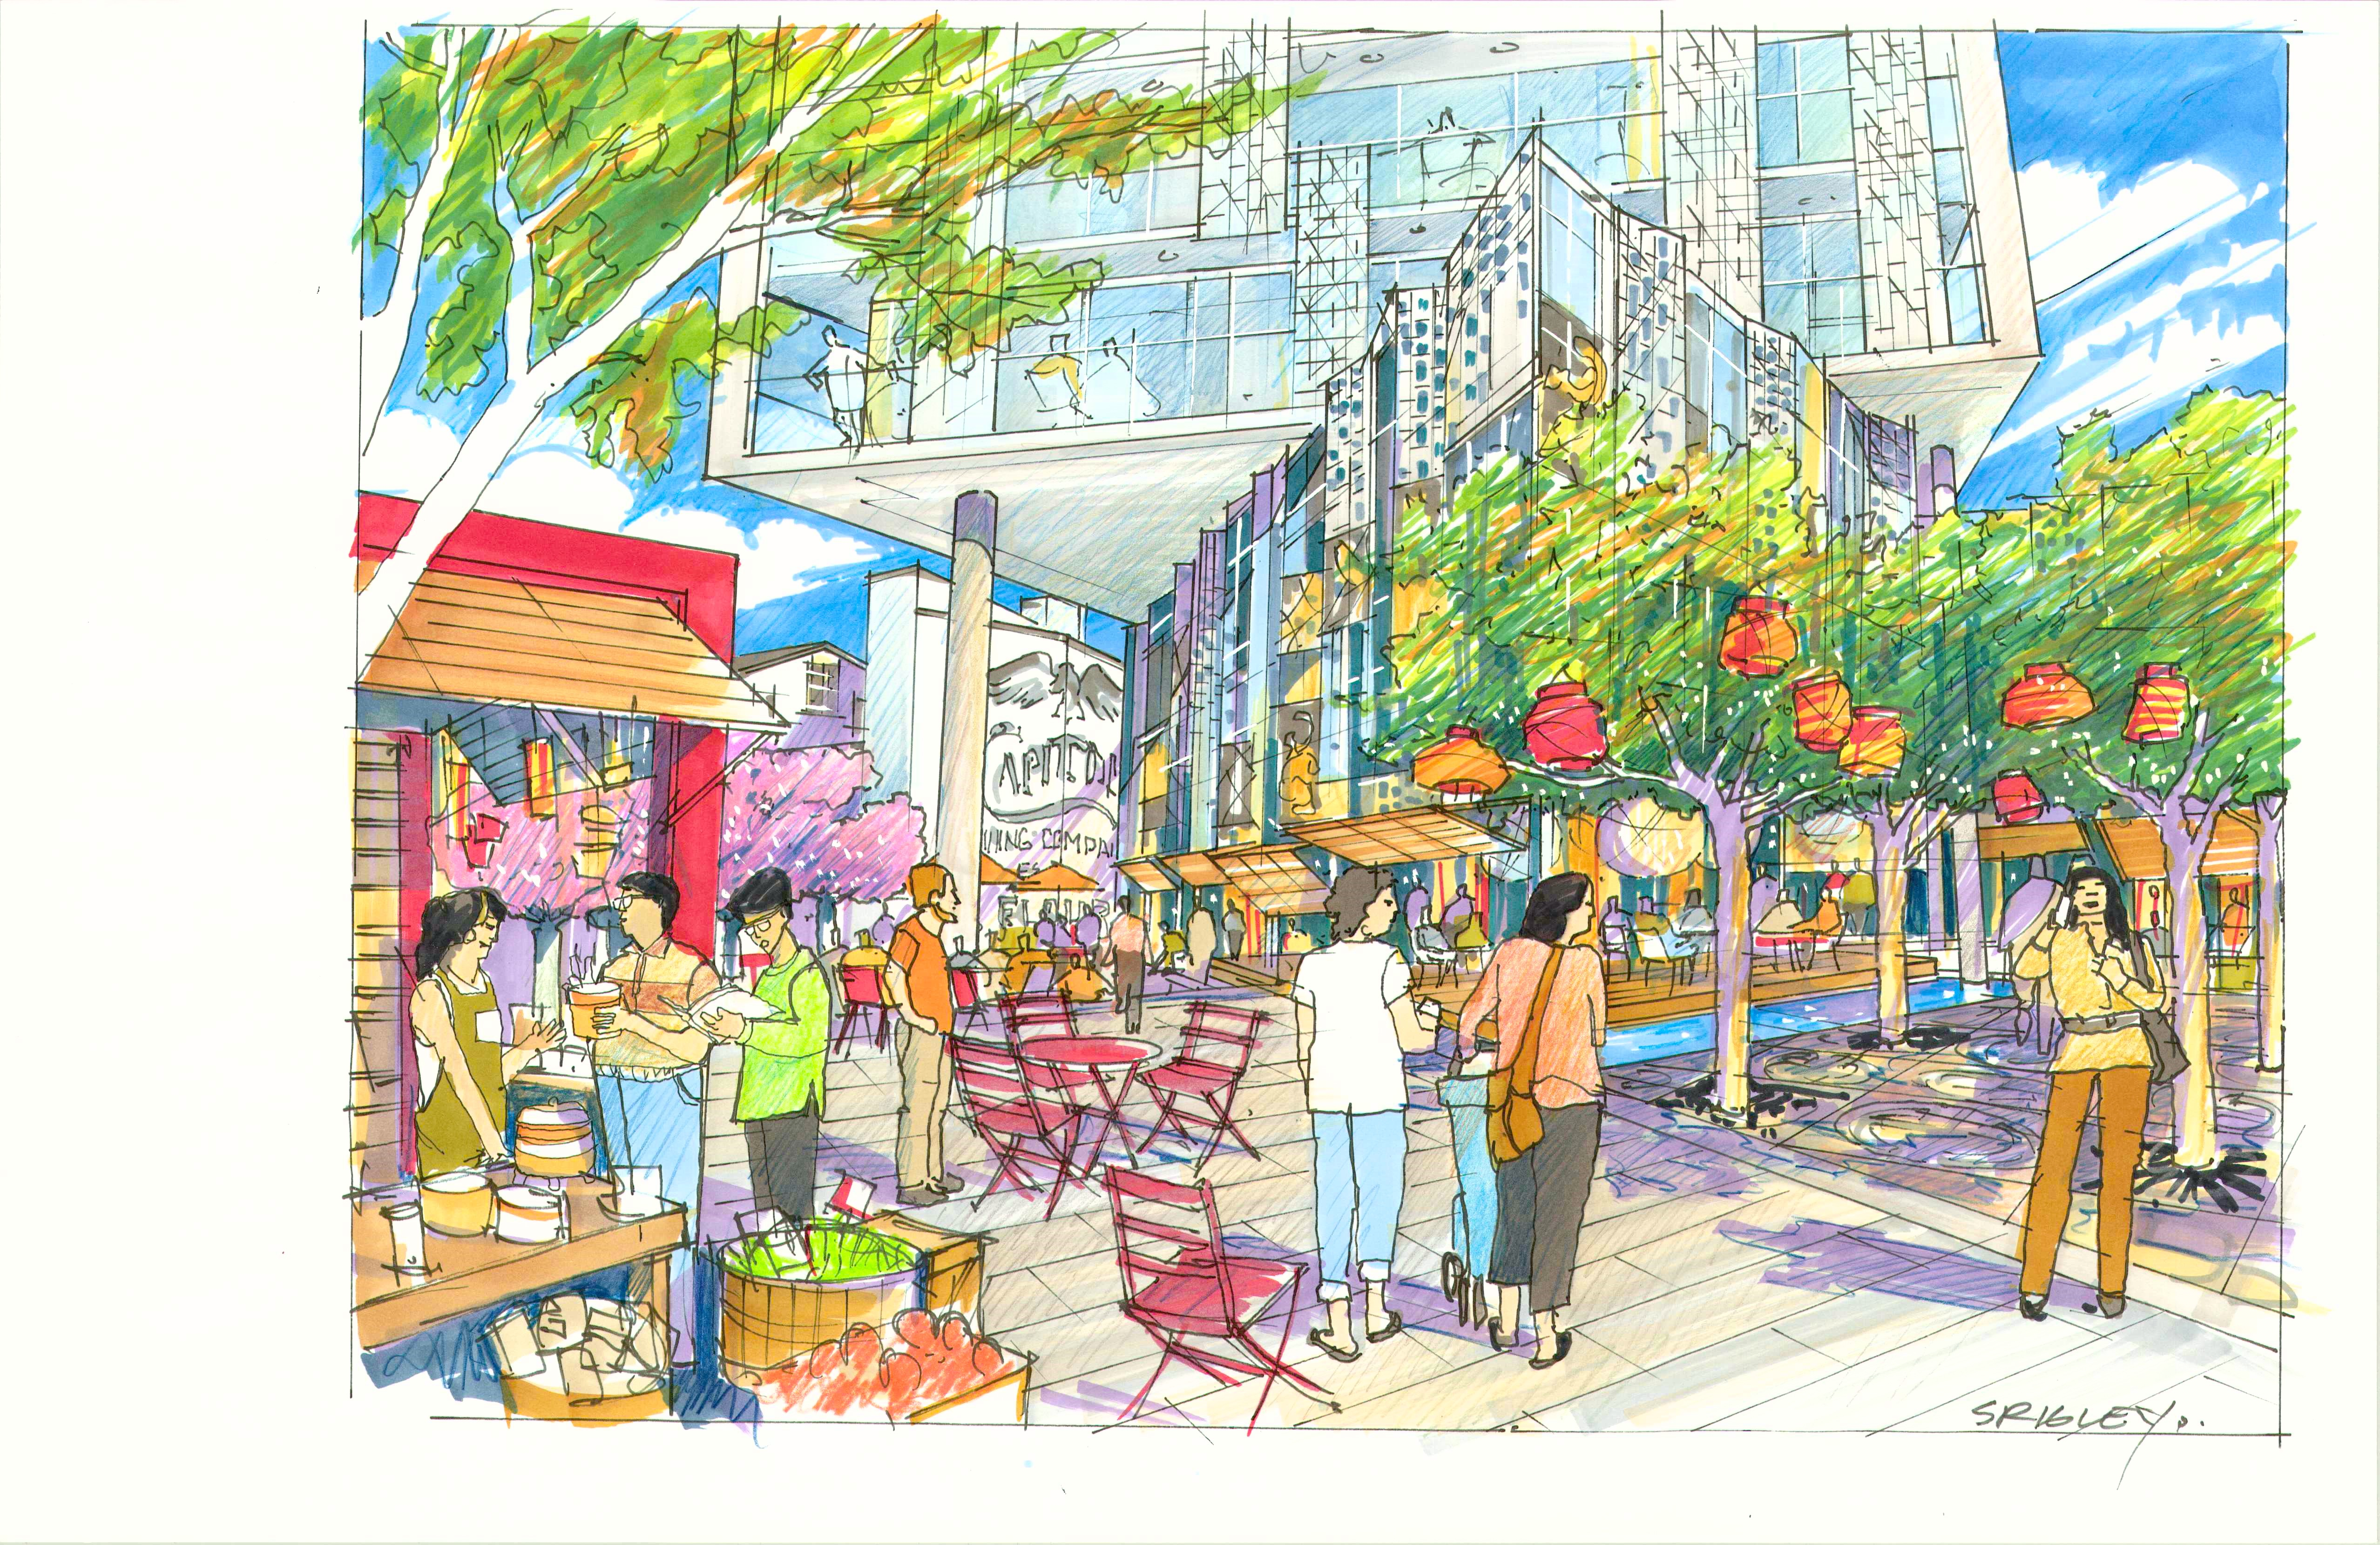 A painting-like rendering of the ground floor of the project that shows pedestrians walking, street trees, and, in the background, the bottom of the new development.